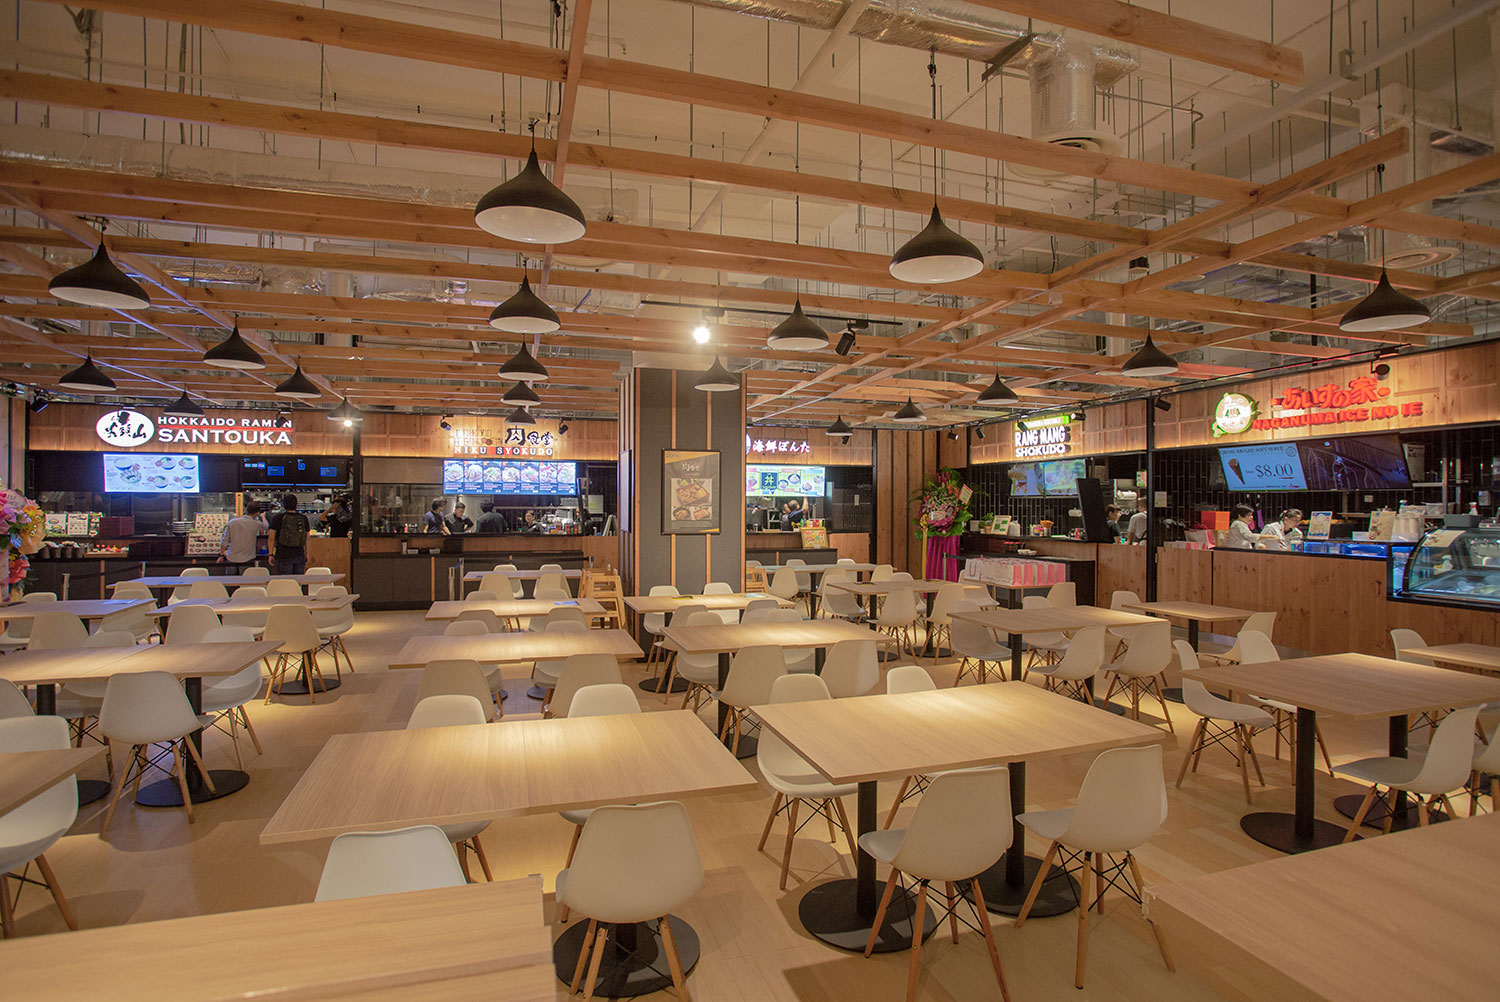 Food-Court-Concept-with-curated-food-tenants